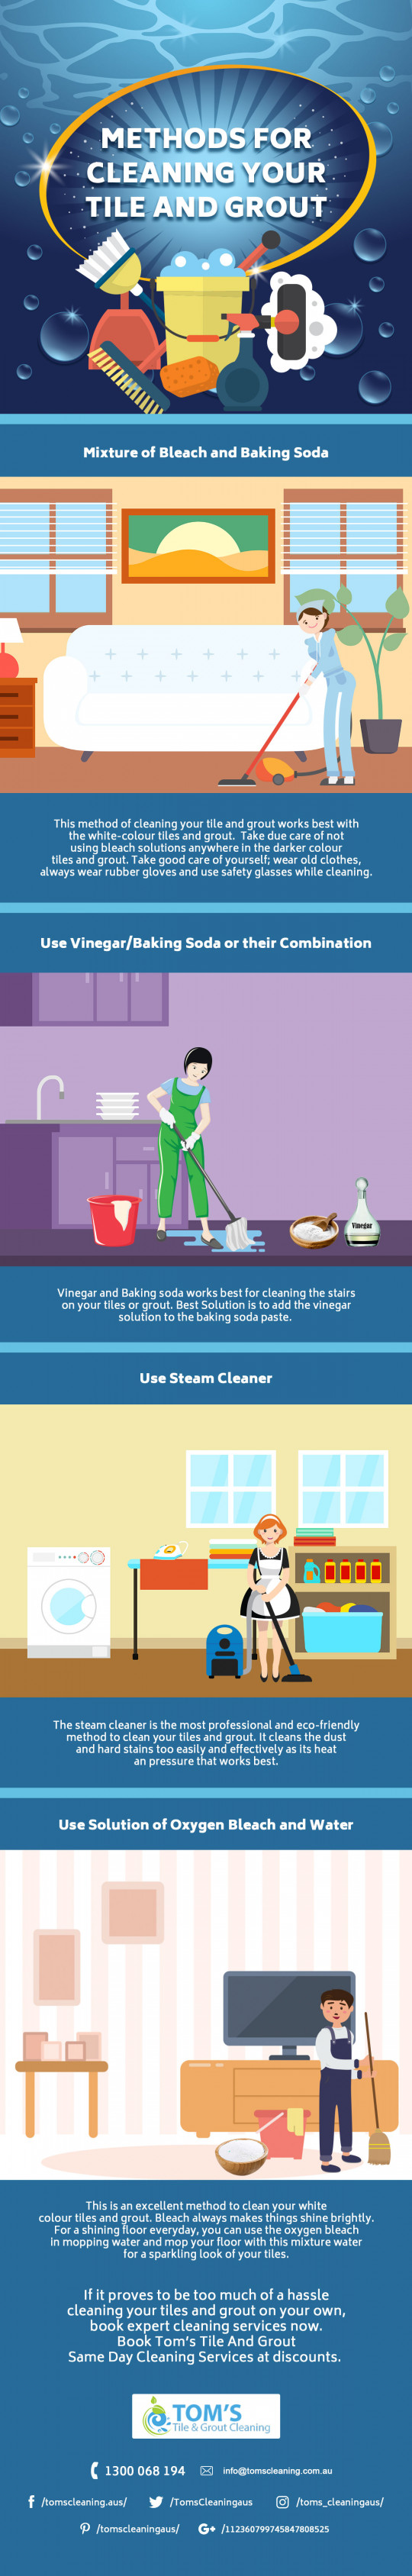 4 Methods for Cleaning Your Tile and Grout | Tile and Grout Cleaning ...